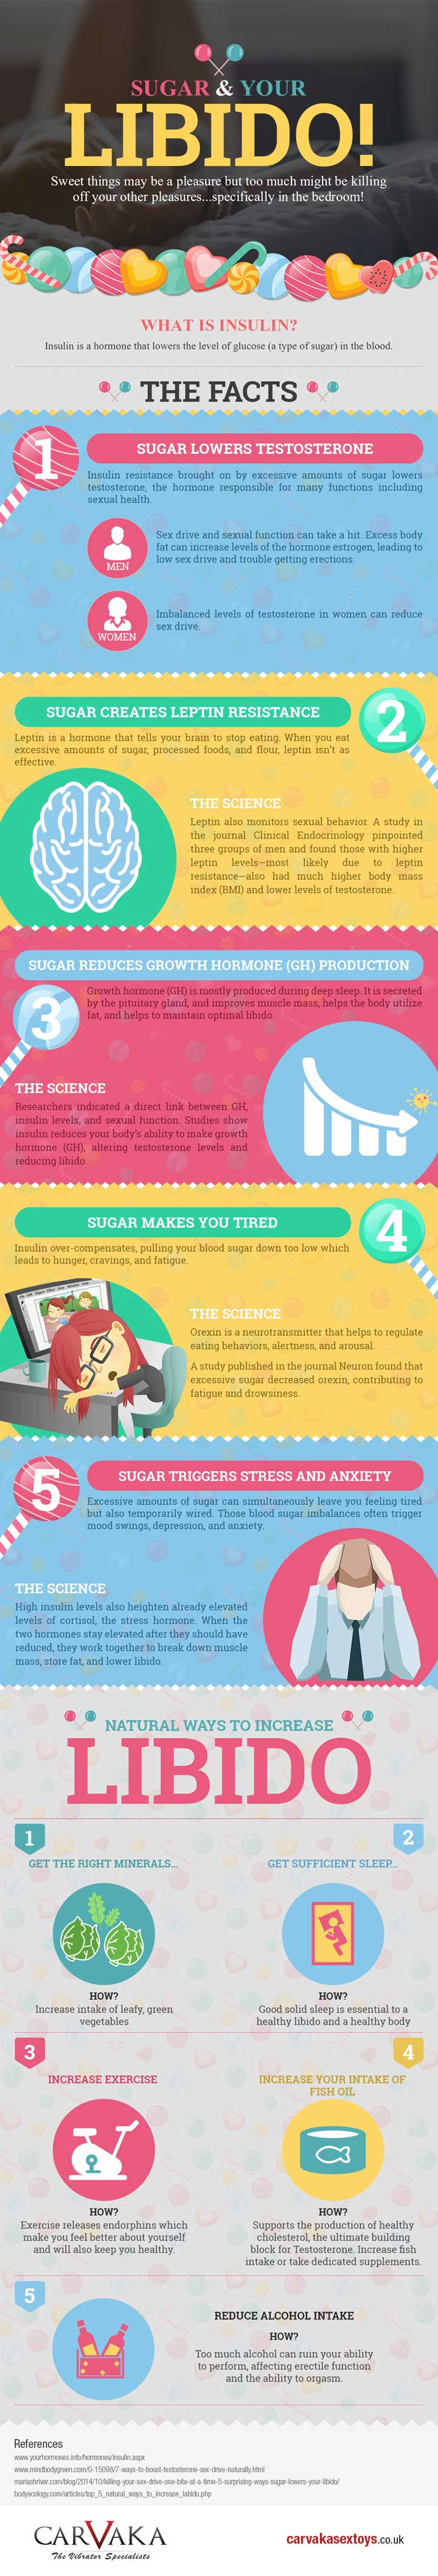 sugar-and-libido-infographic